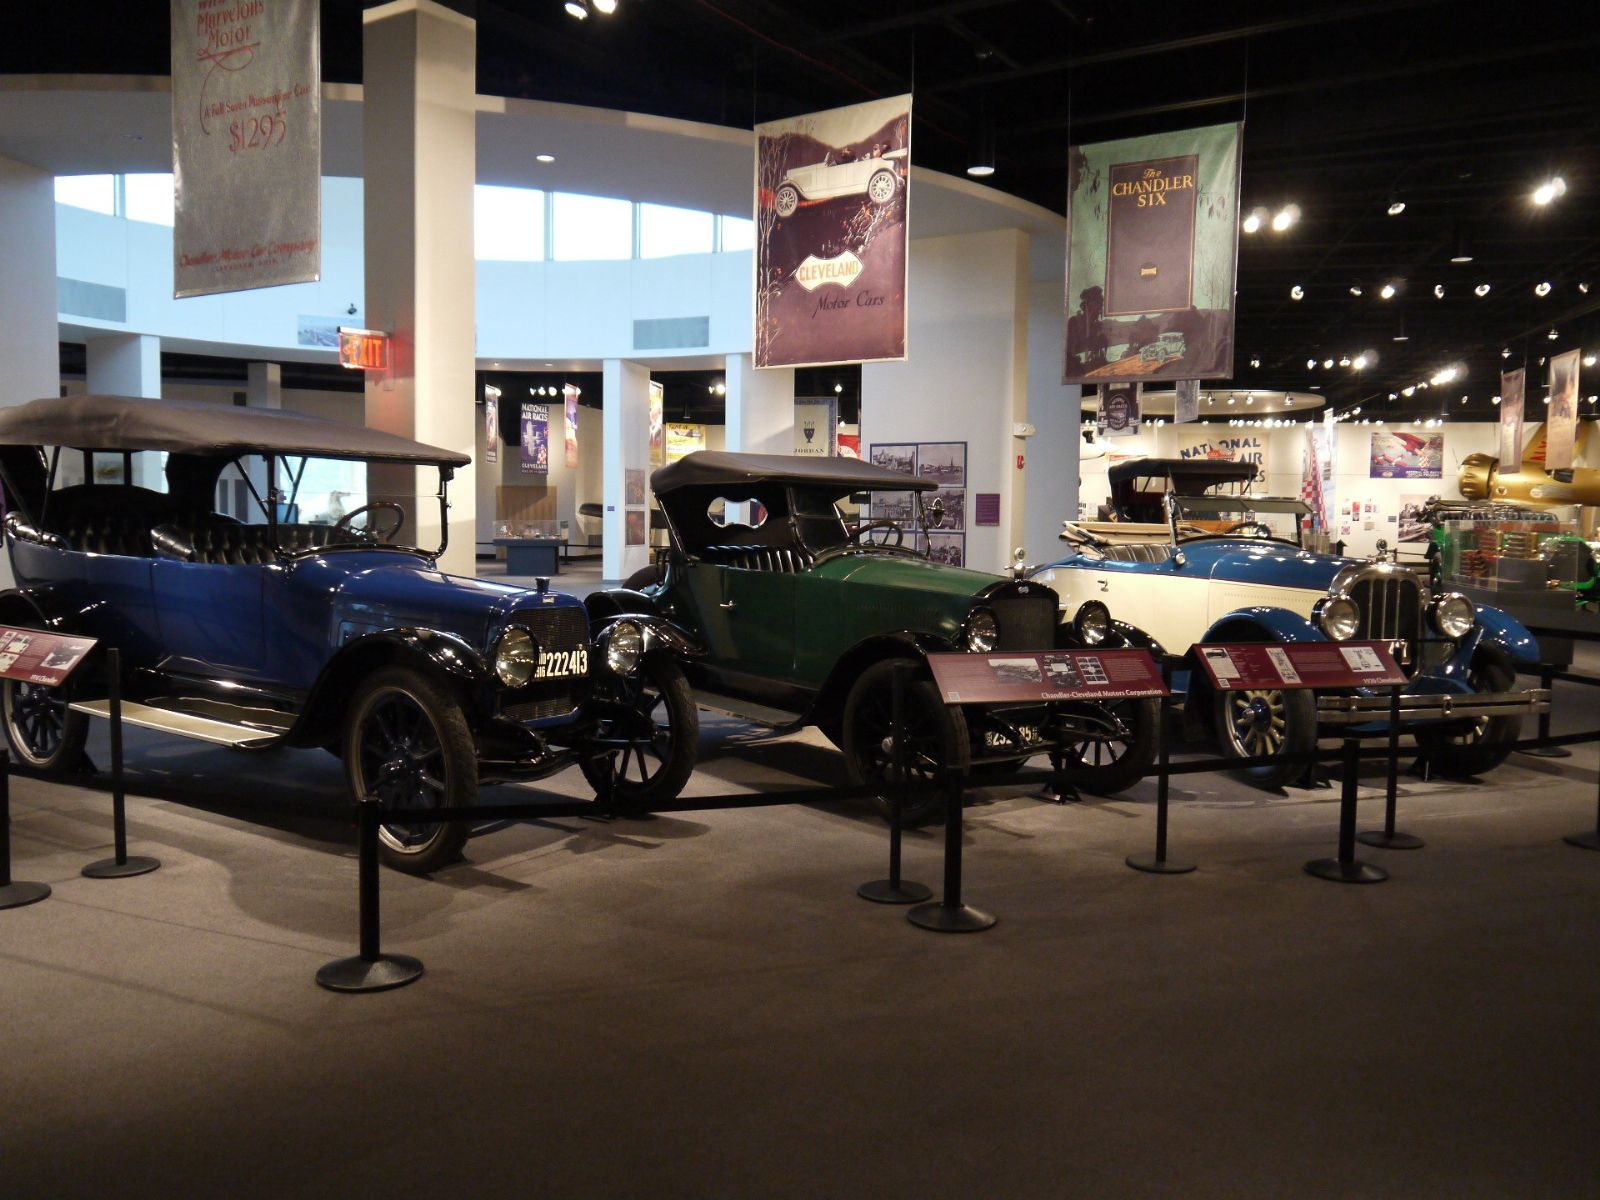 The Crawford Auto-Aviation Museum highlights Northeast Ohio's important role in the development of the transportation industry.